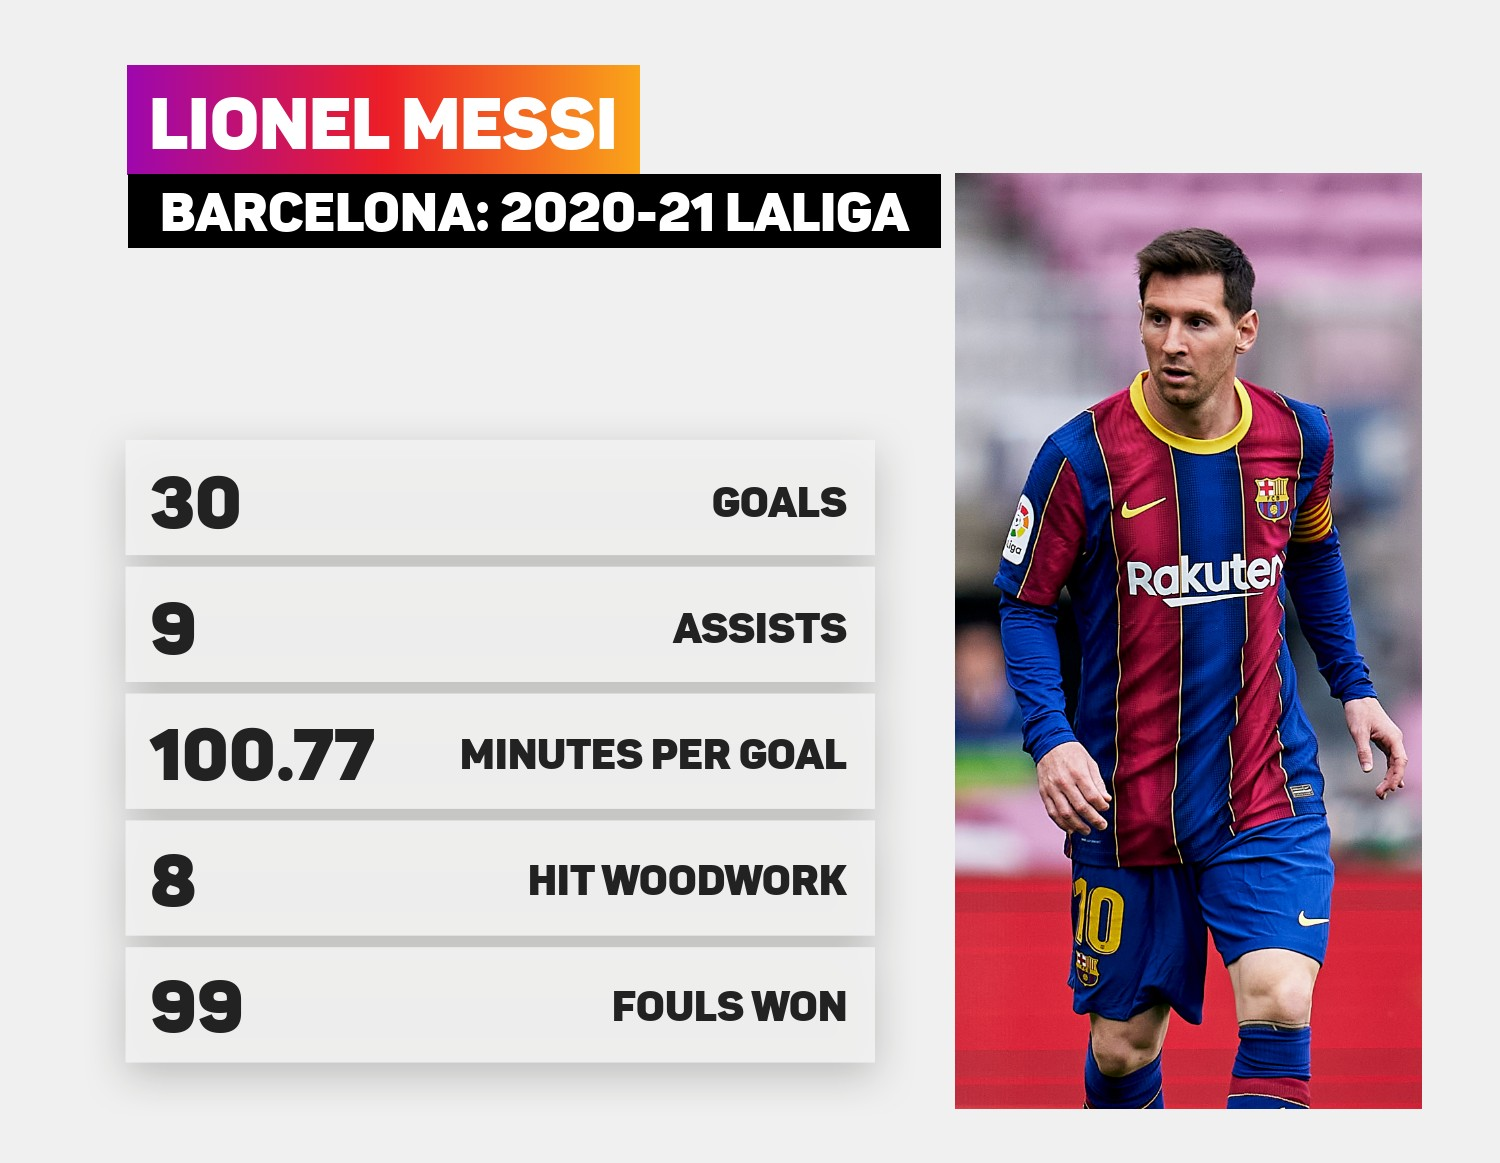 Lionel Messi had a strong 2020-21 season